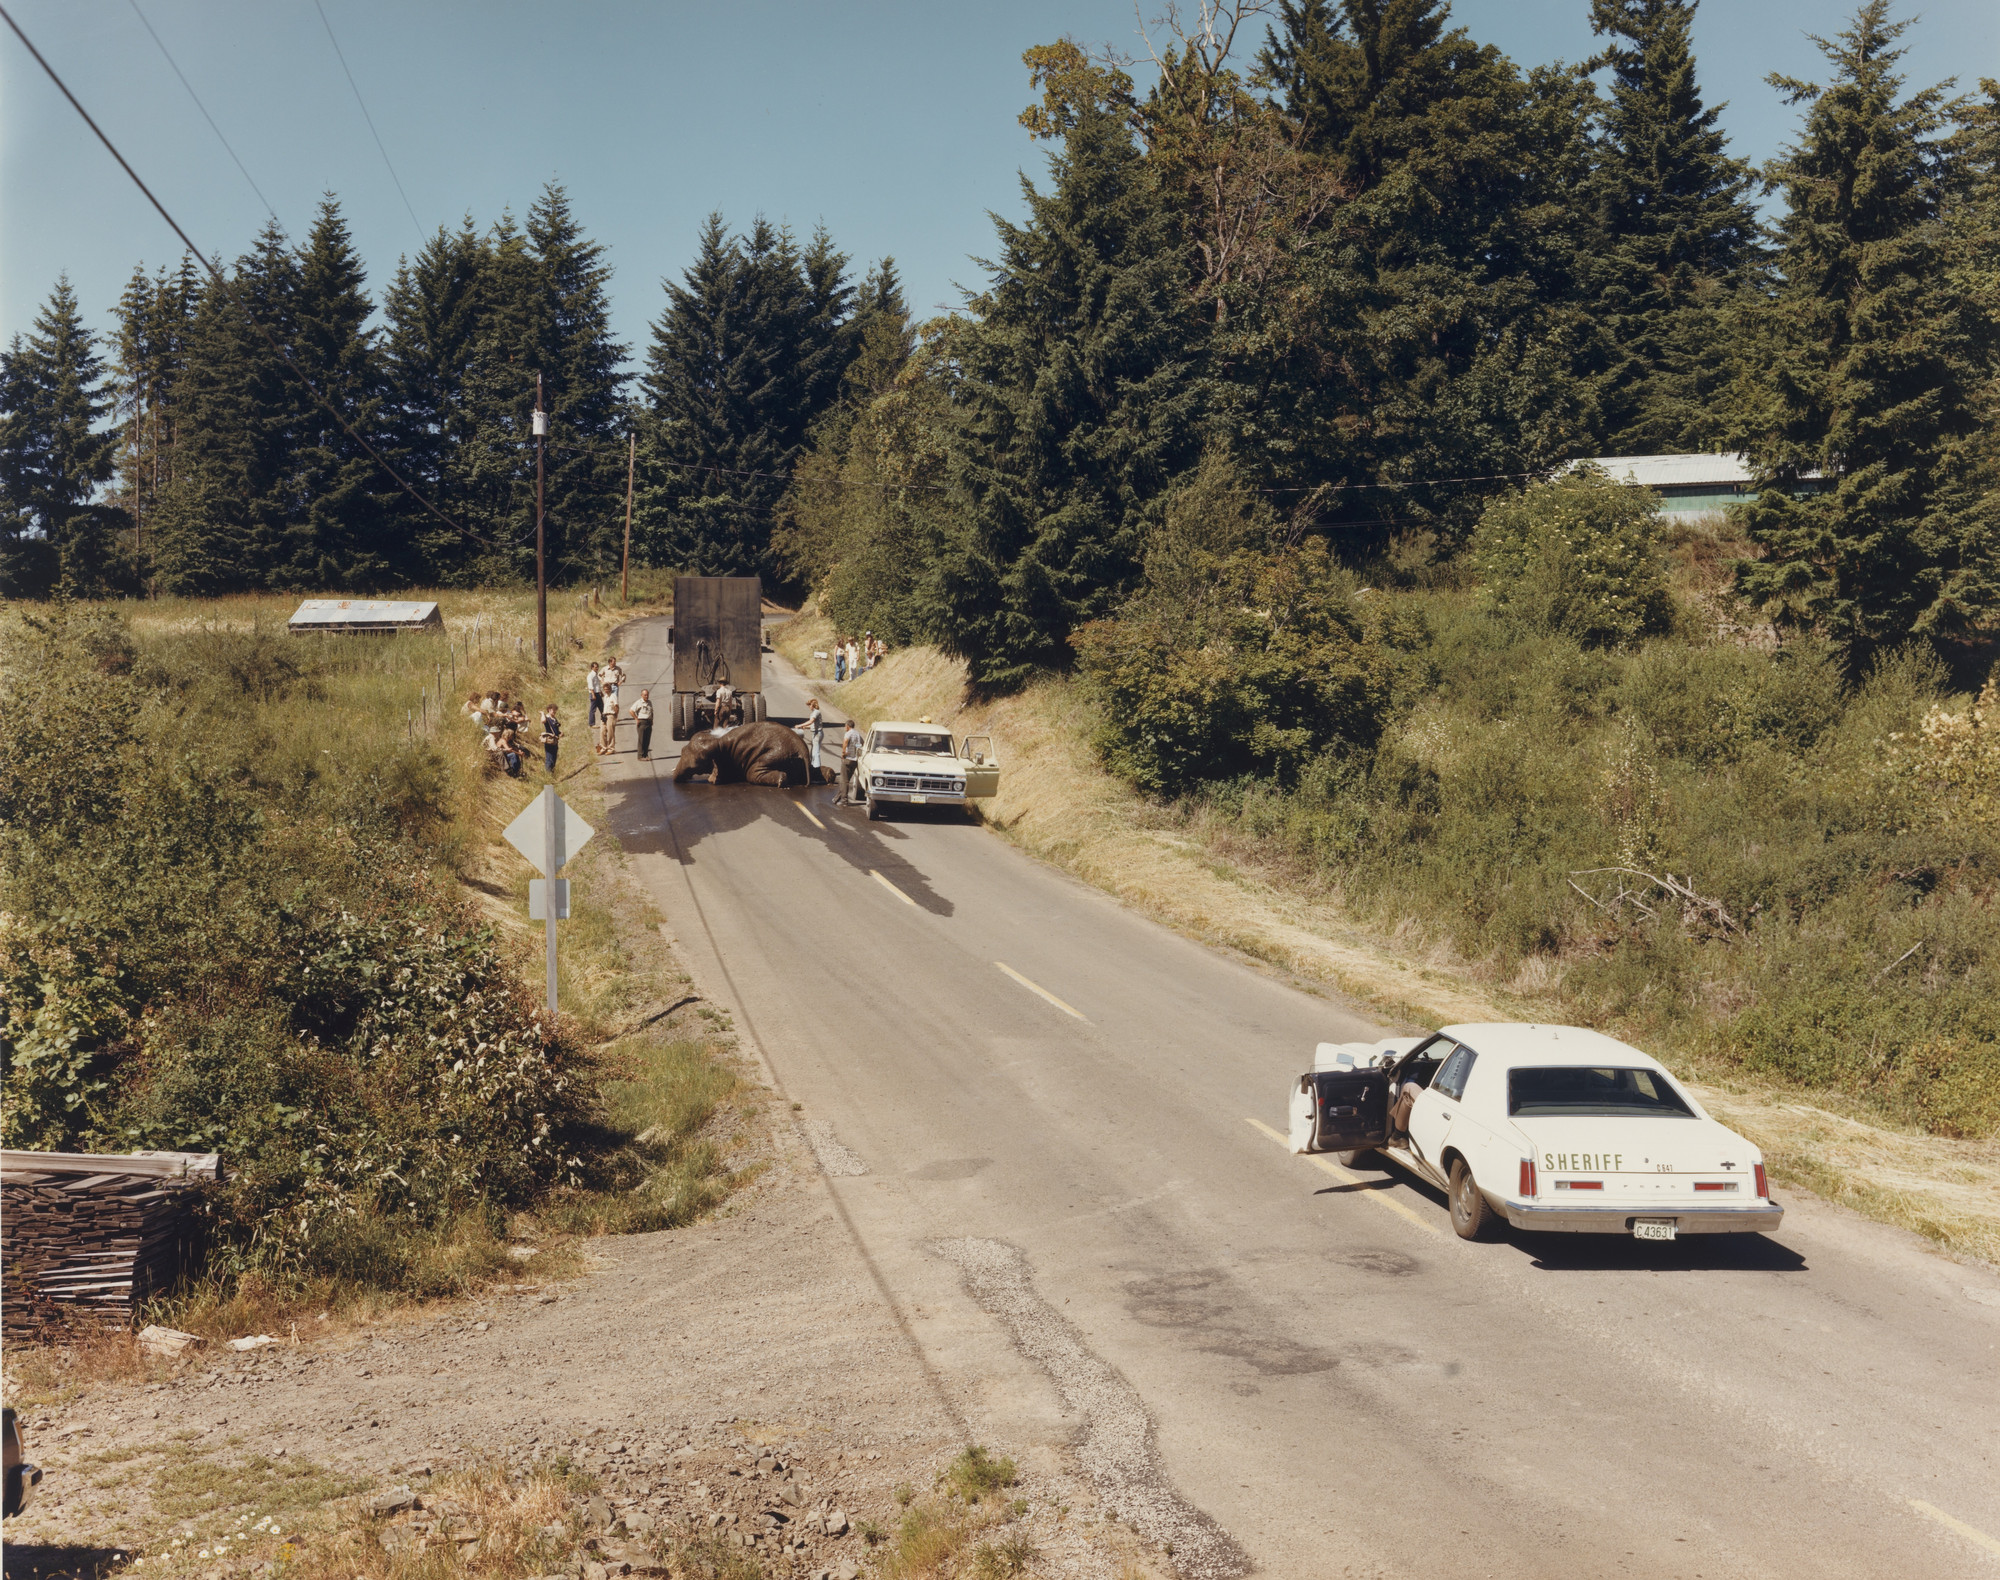 Joel Sternfeld. Exhausted Renegade Elephant, Woodland, Washington. June 1979